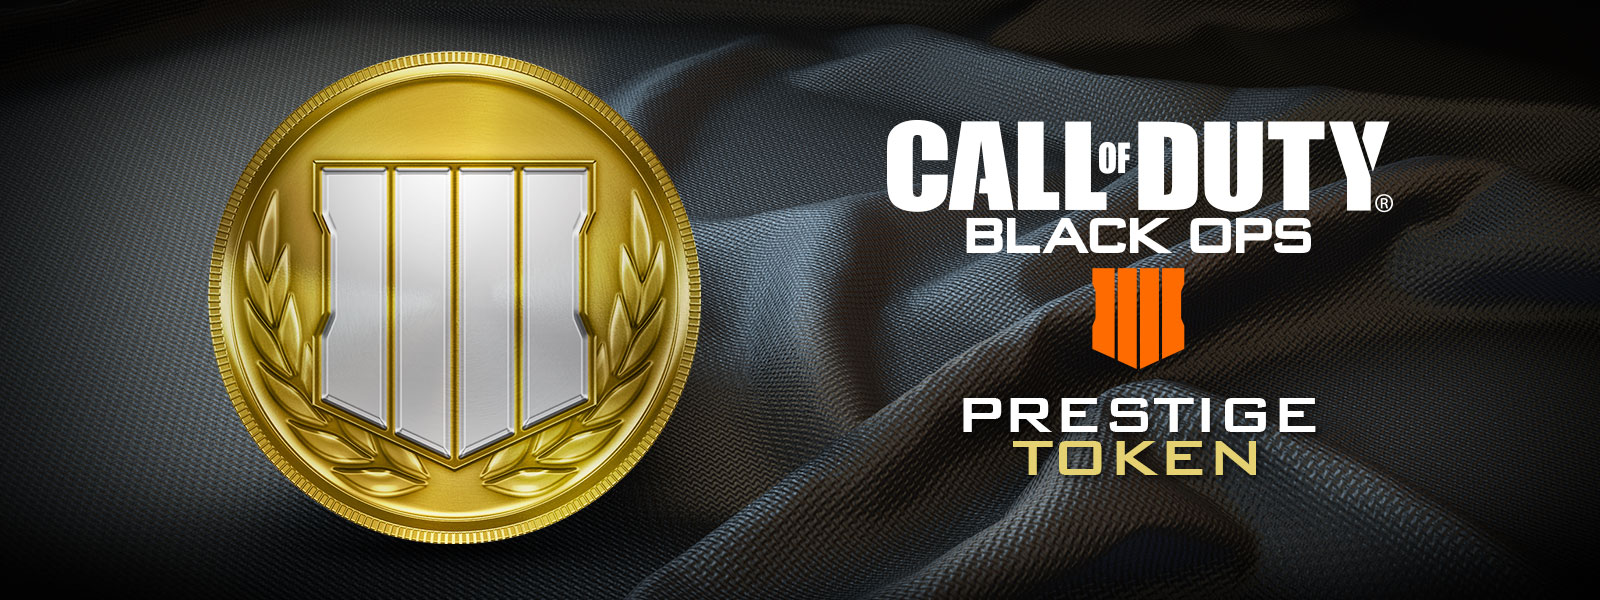 Call of Duty: Black Ops 4 prestige token logo, gold token with laurels and Black Ops 4 logo, carbon fibre fabric background